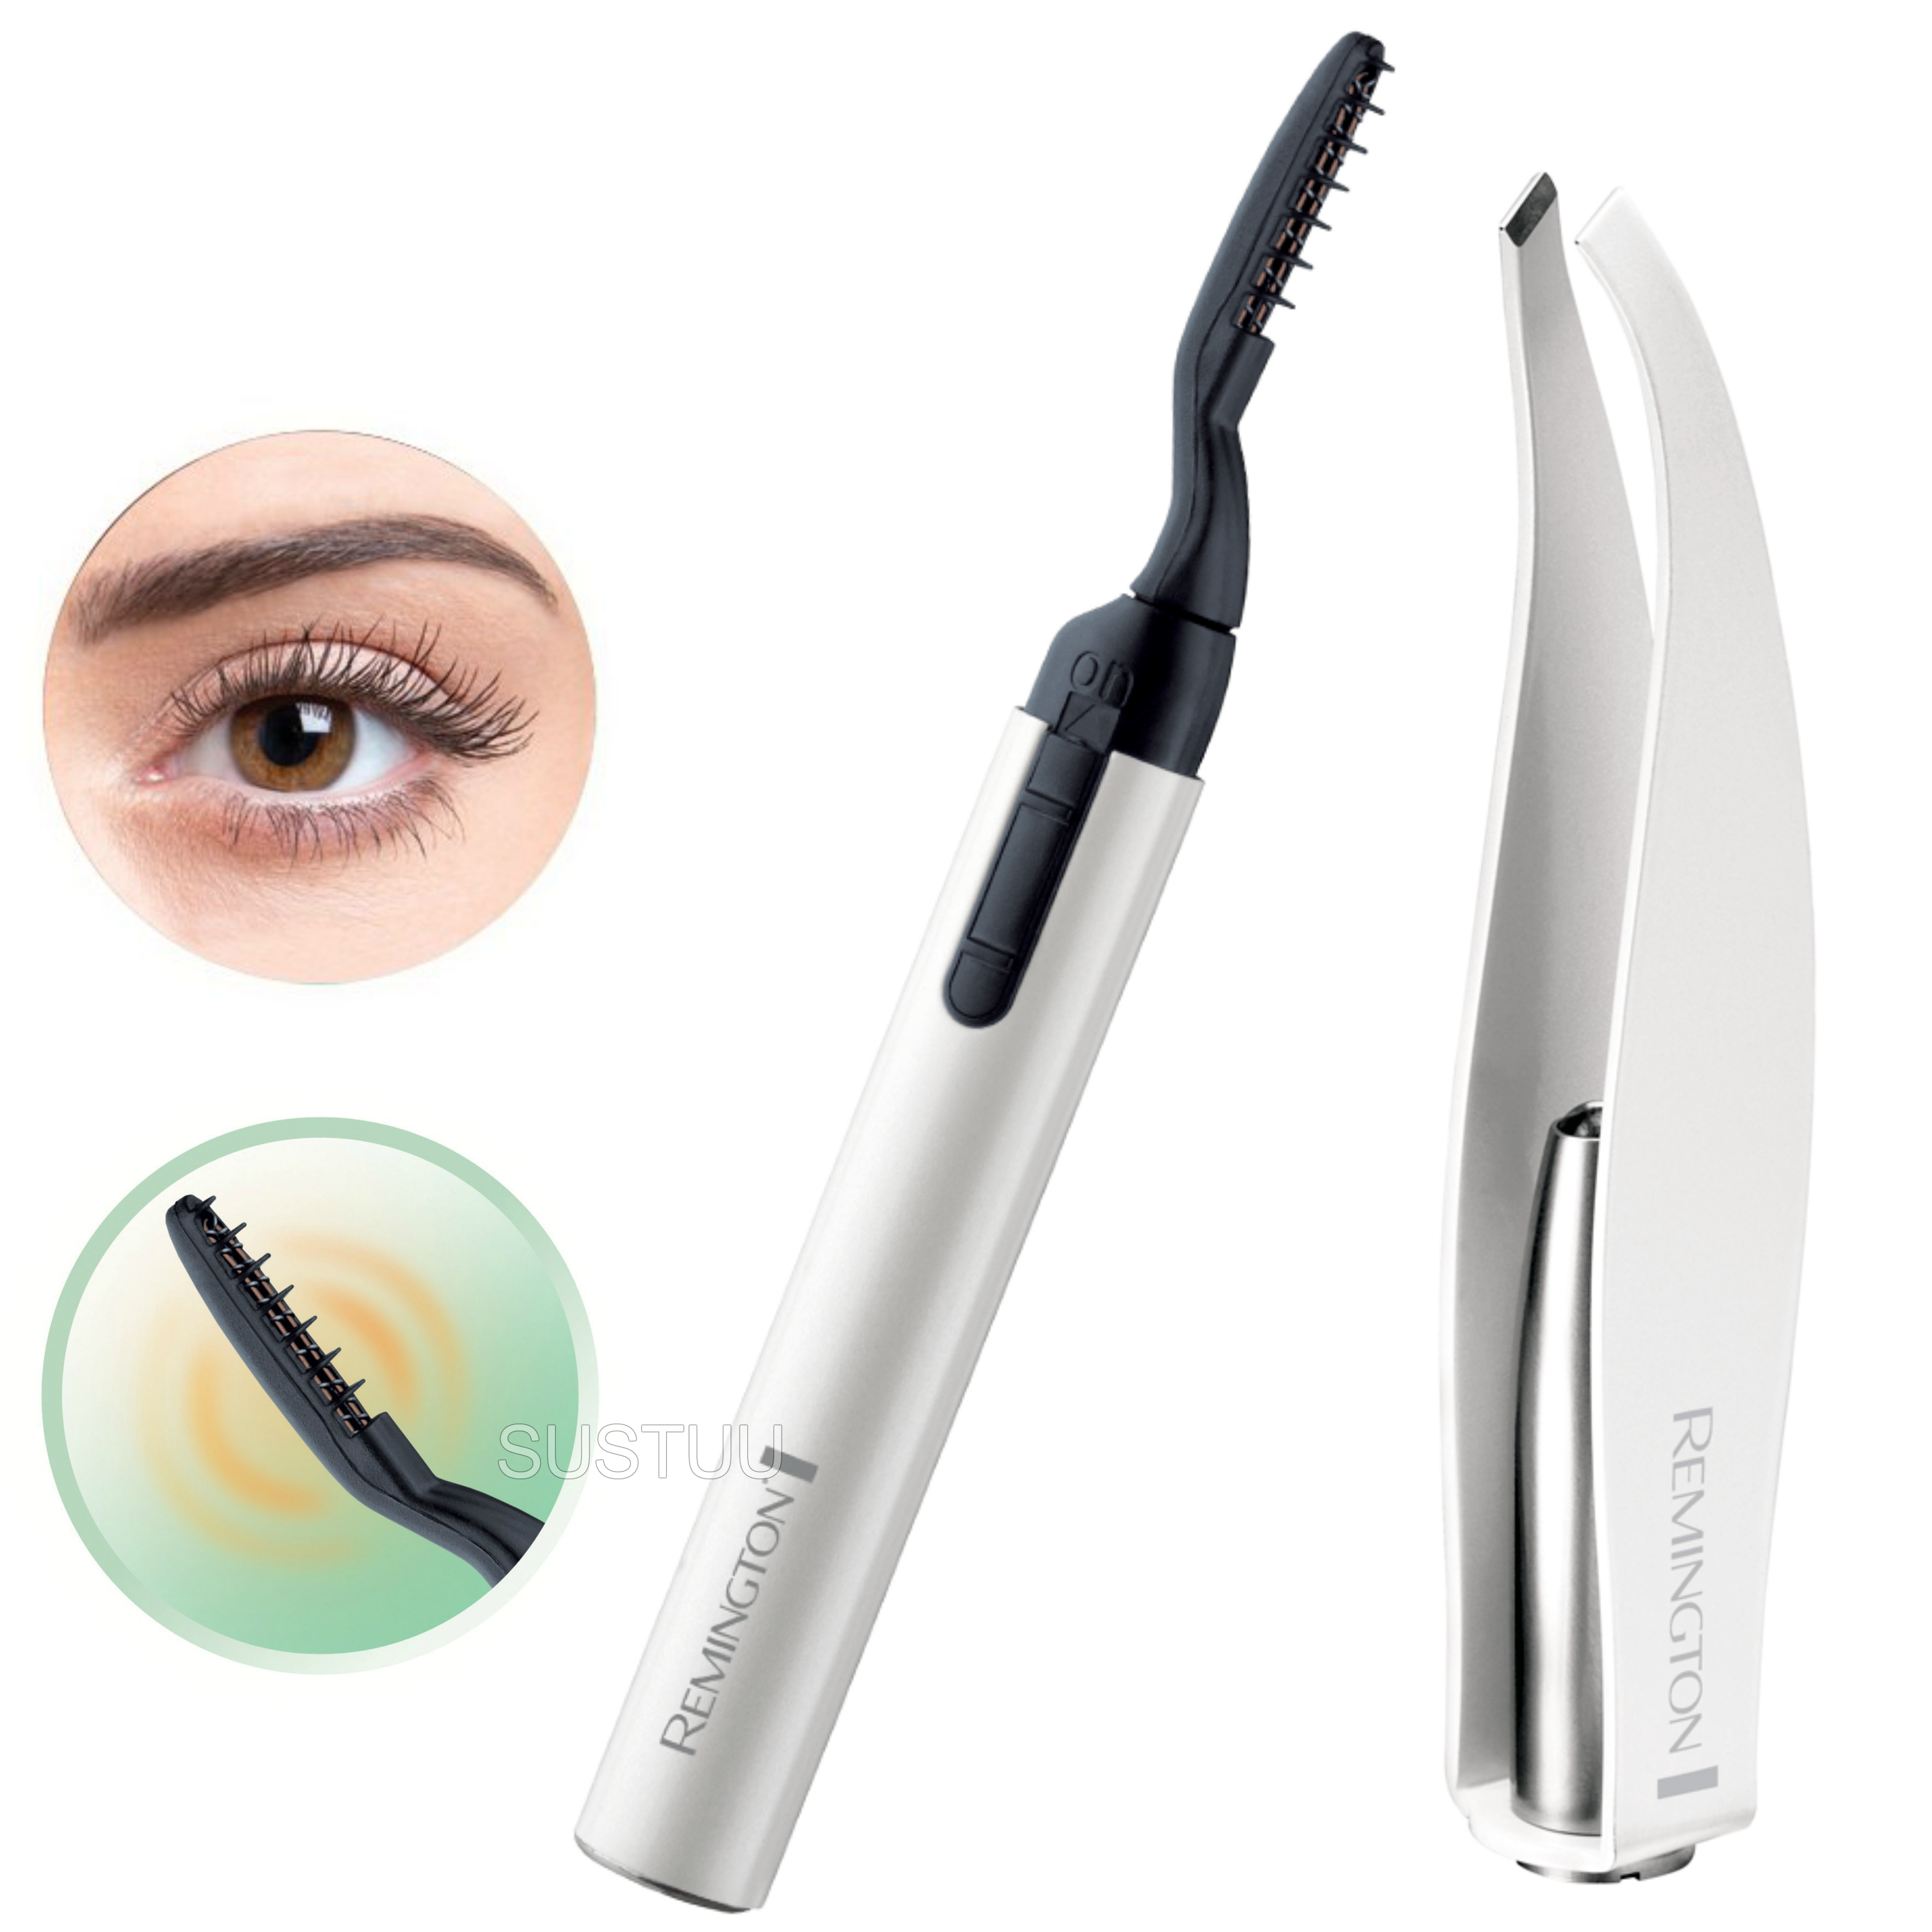 Remington Reveal Heated Eye Lash Curler | LED Precision Tweezers | Battery Operated